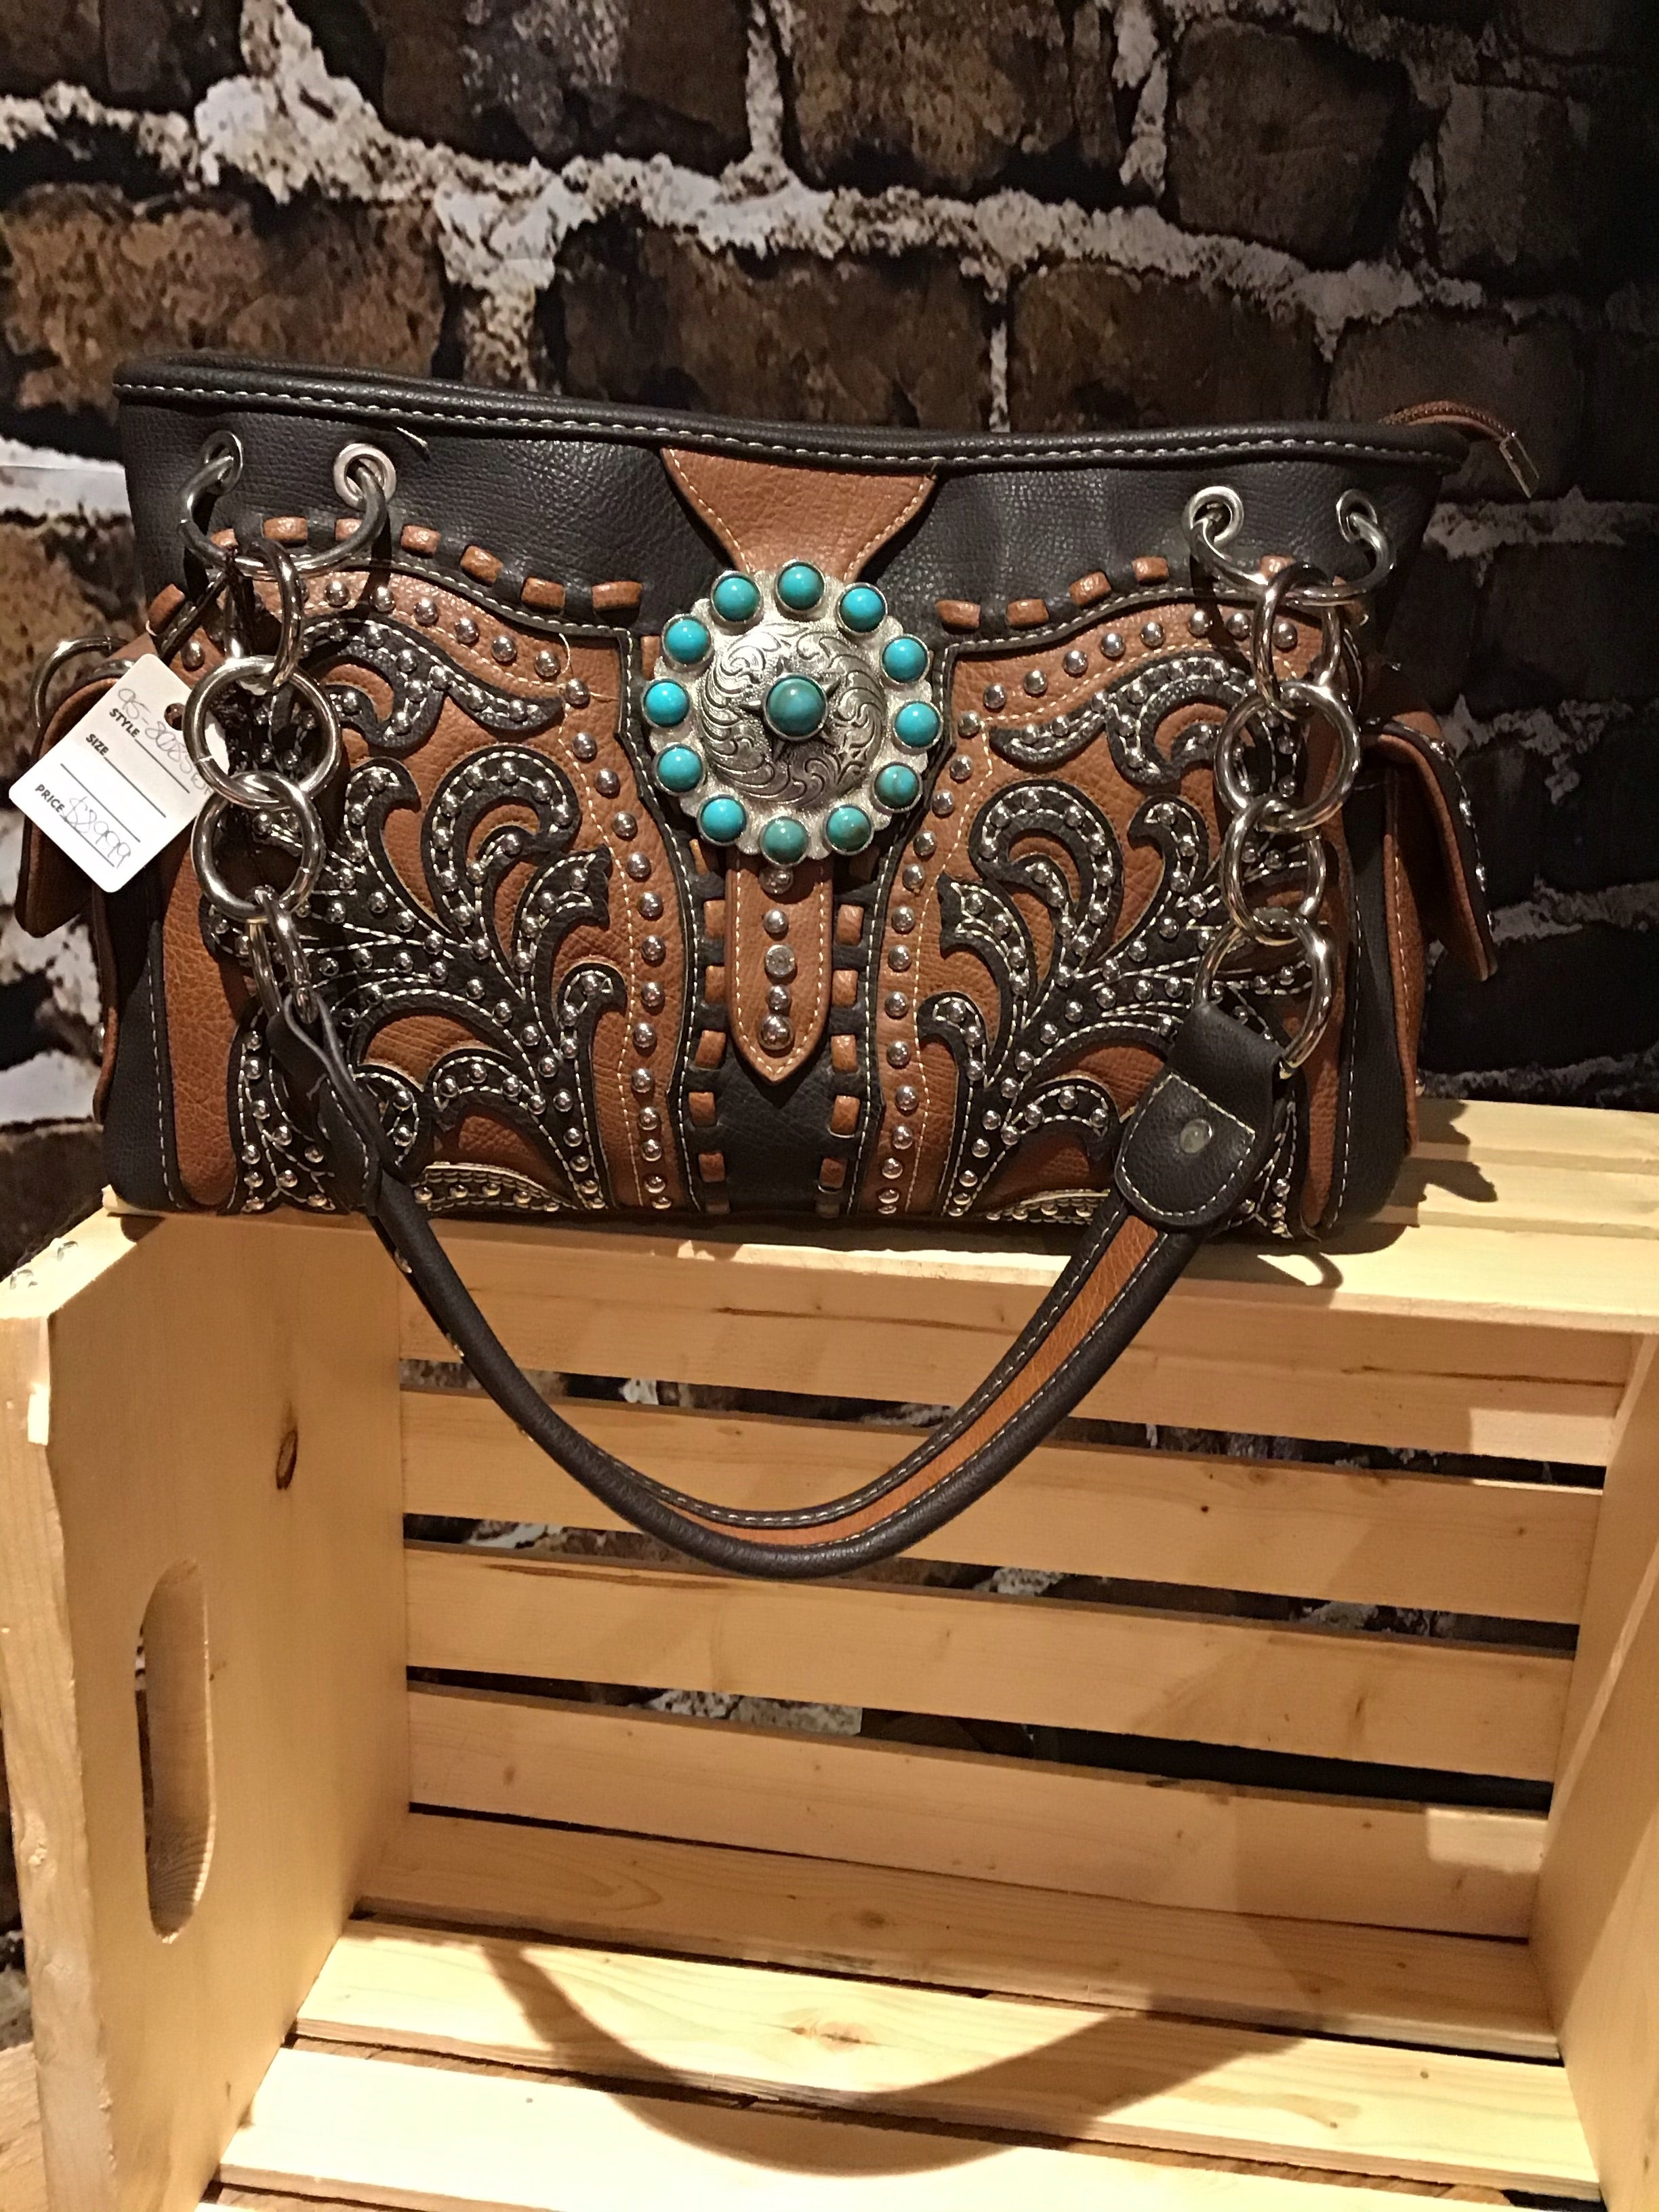 Western Brown with teal Purse Buckle Jewel style shoulder bag purse handbag Gorgeous